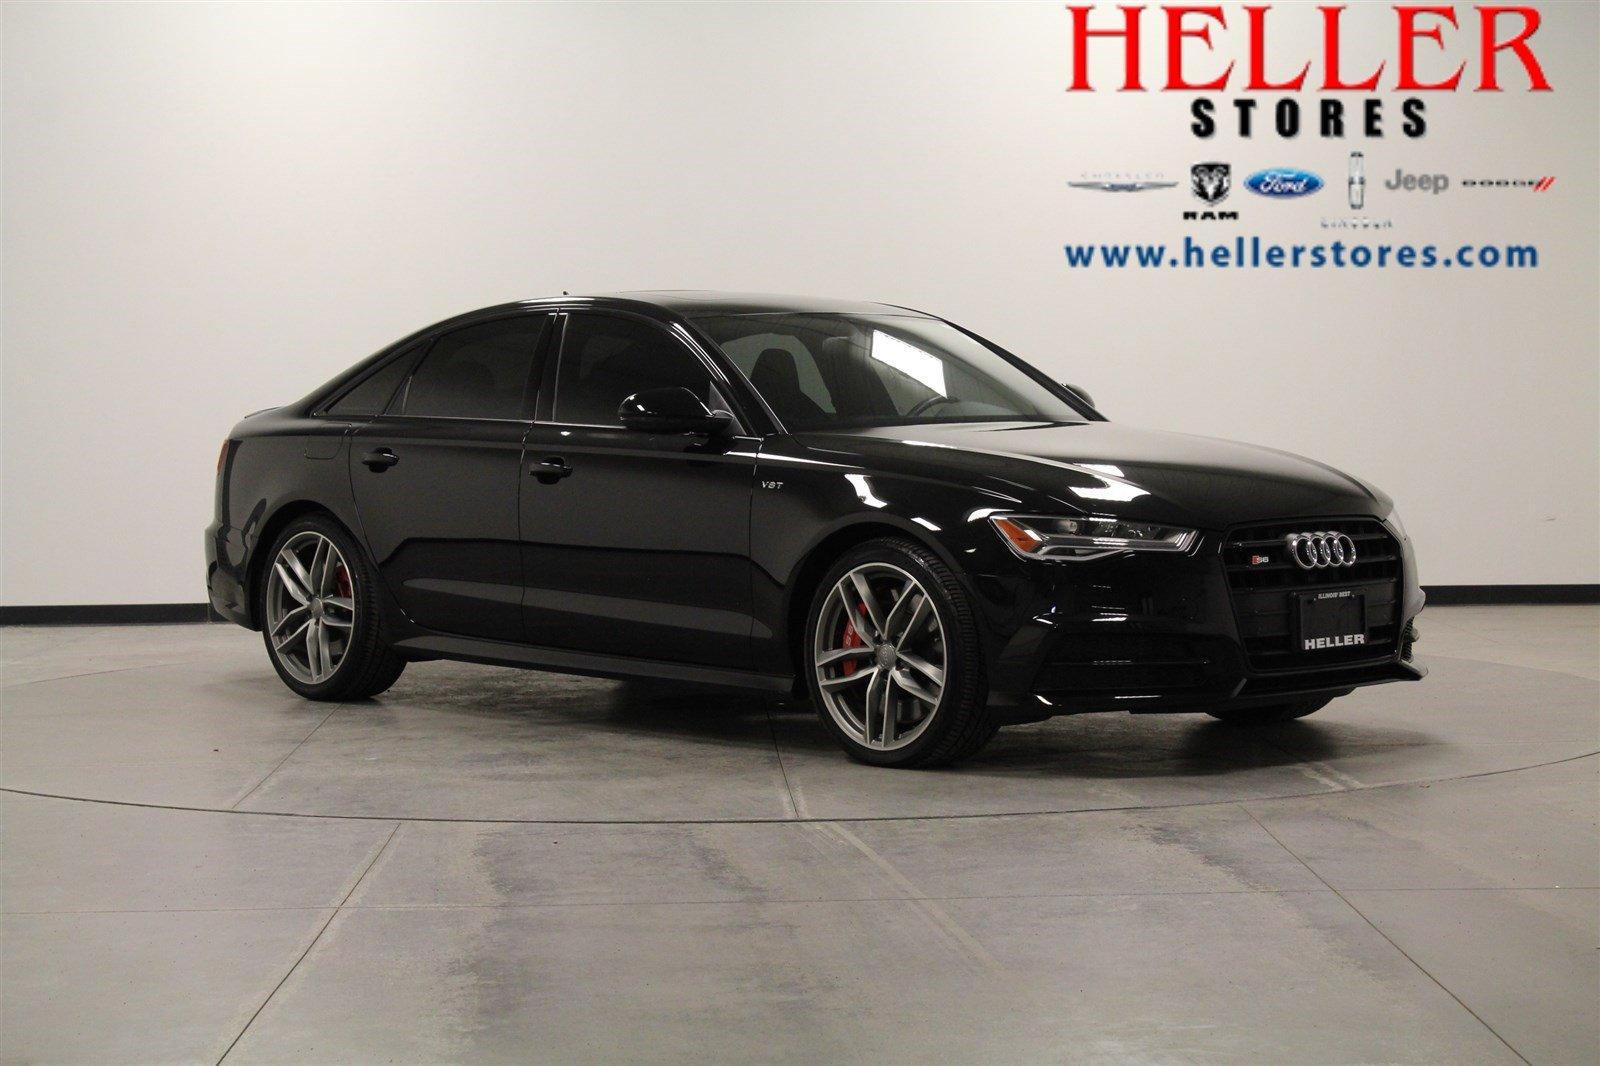 Pre-Owned 2018 Audi S6 4.0T Premium Plus